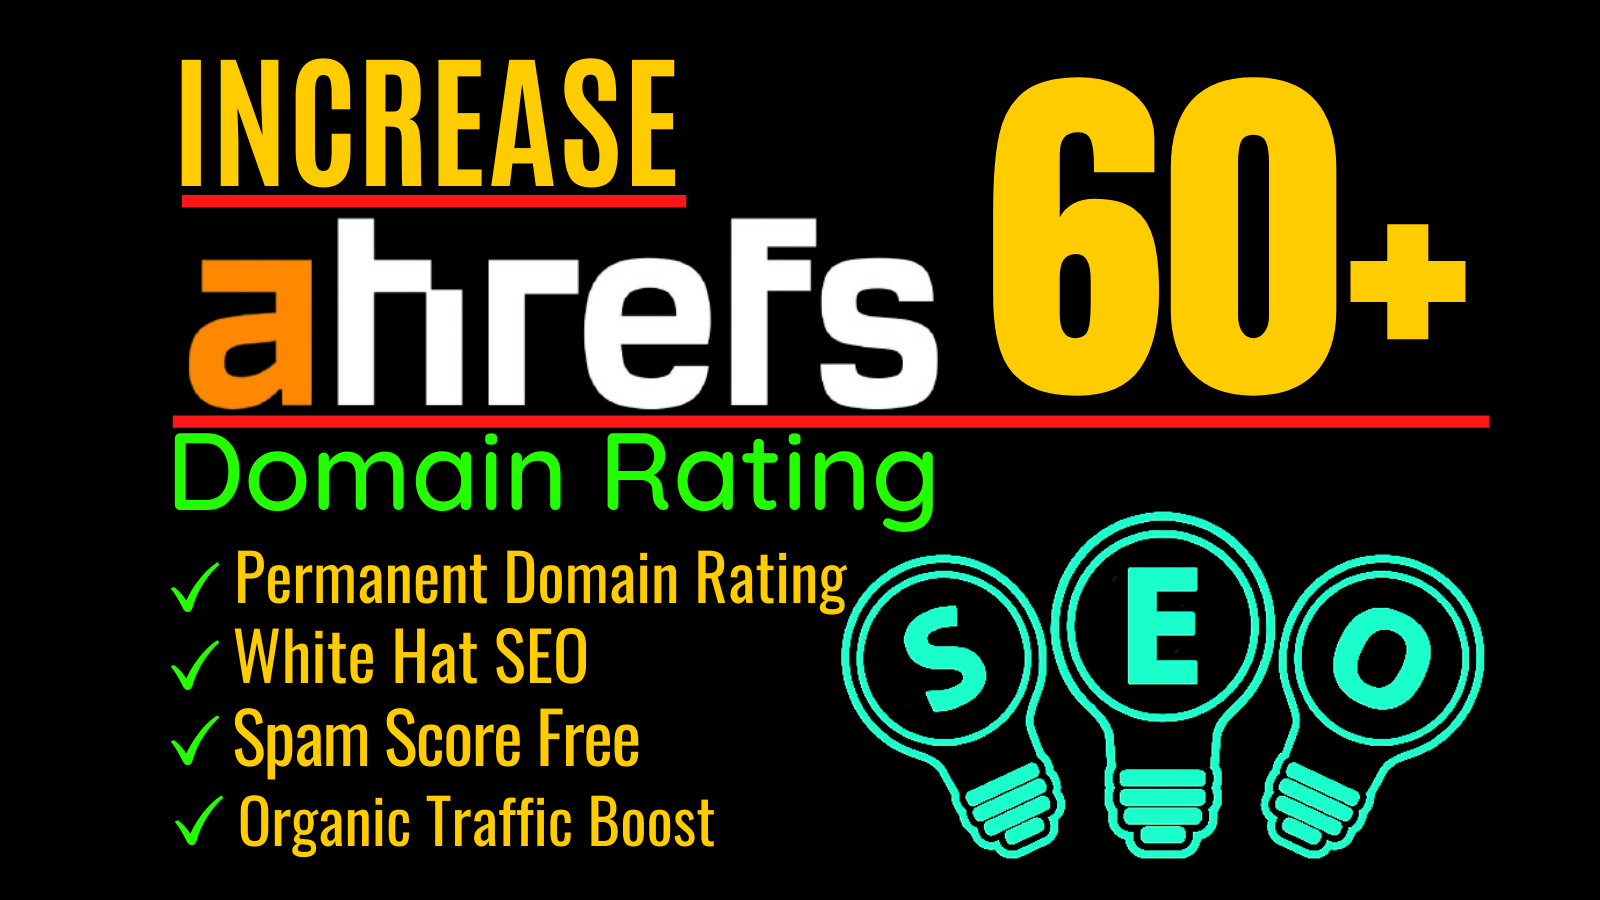 I will increase ahrefs domain rating or increase domain rating 60 plus